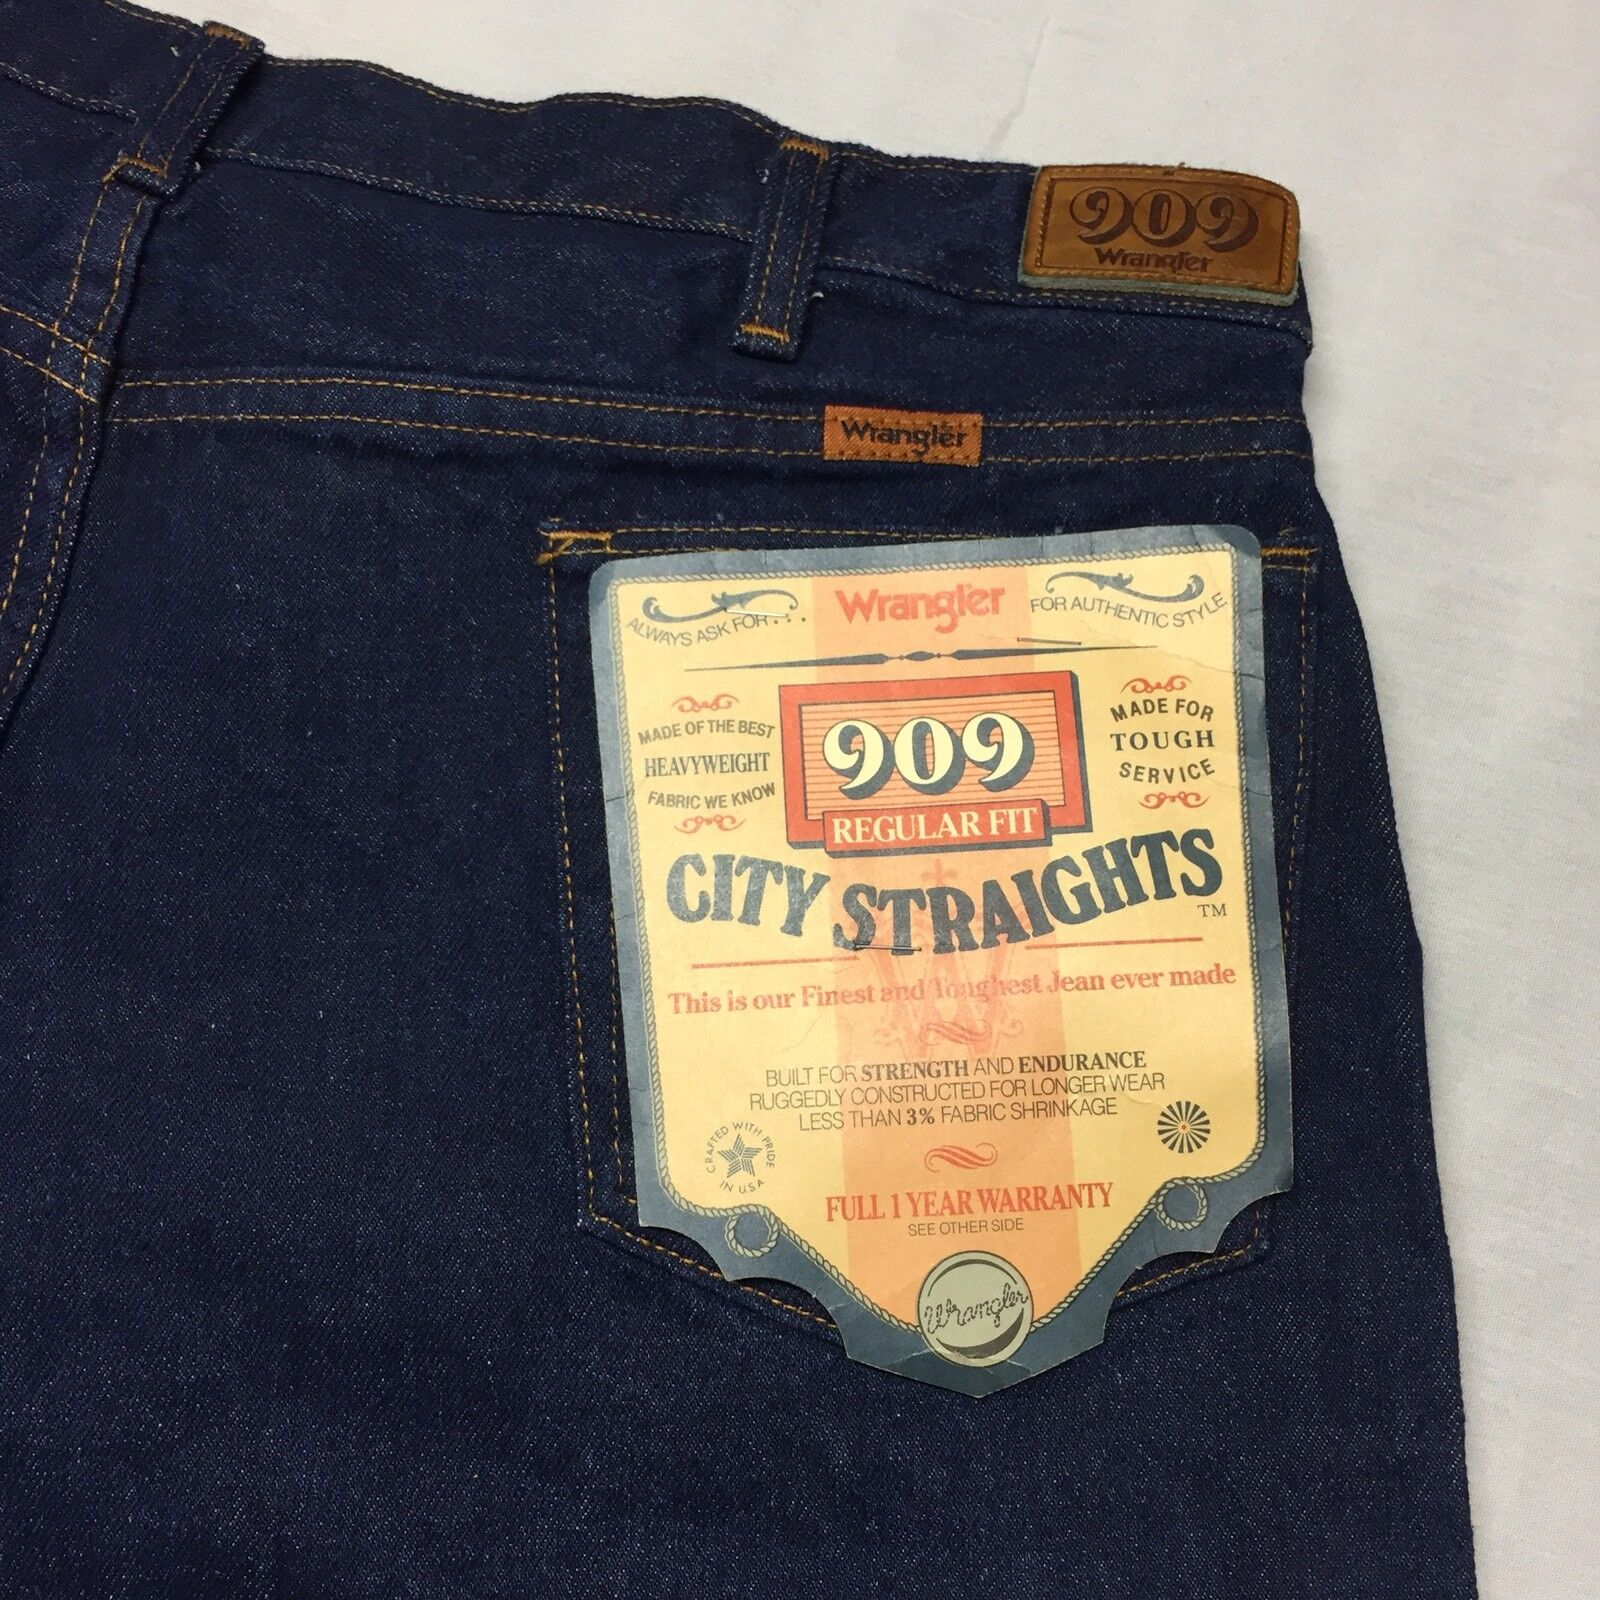 Vintage 40x30 Wrangler 909 City Straights Regular Fit bluee Jeans Rodeo Cowboy